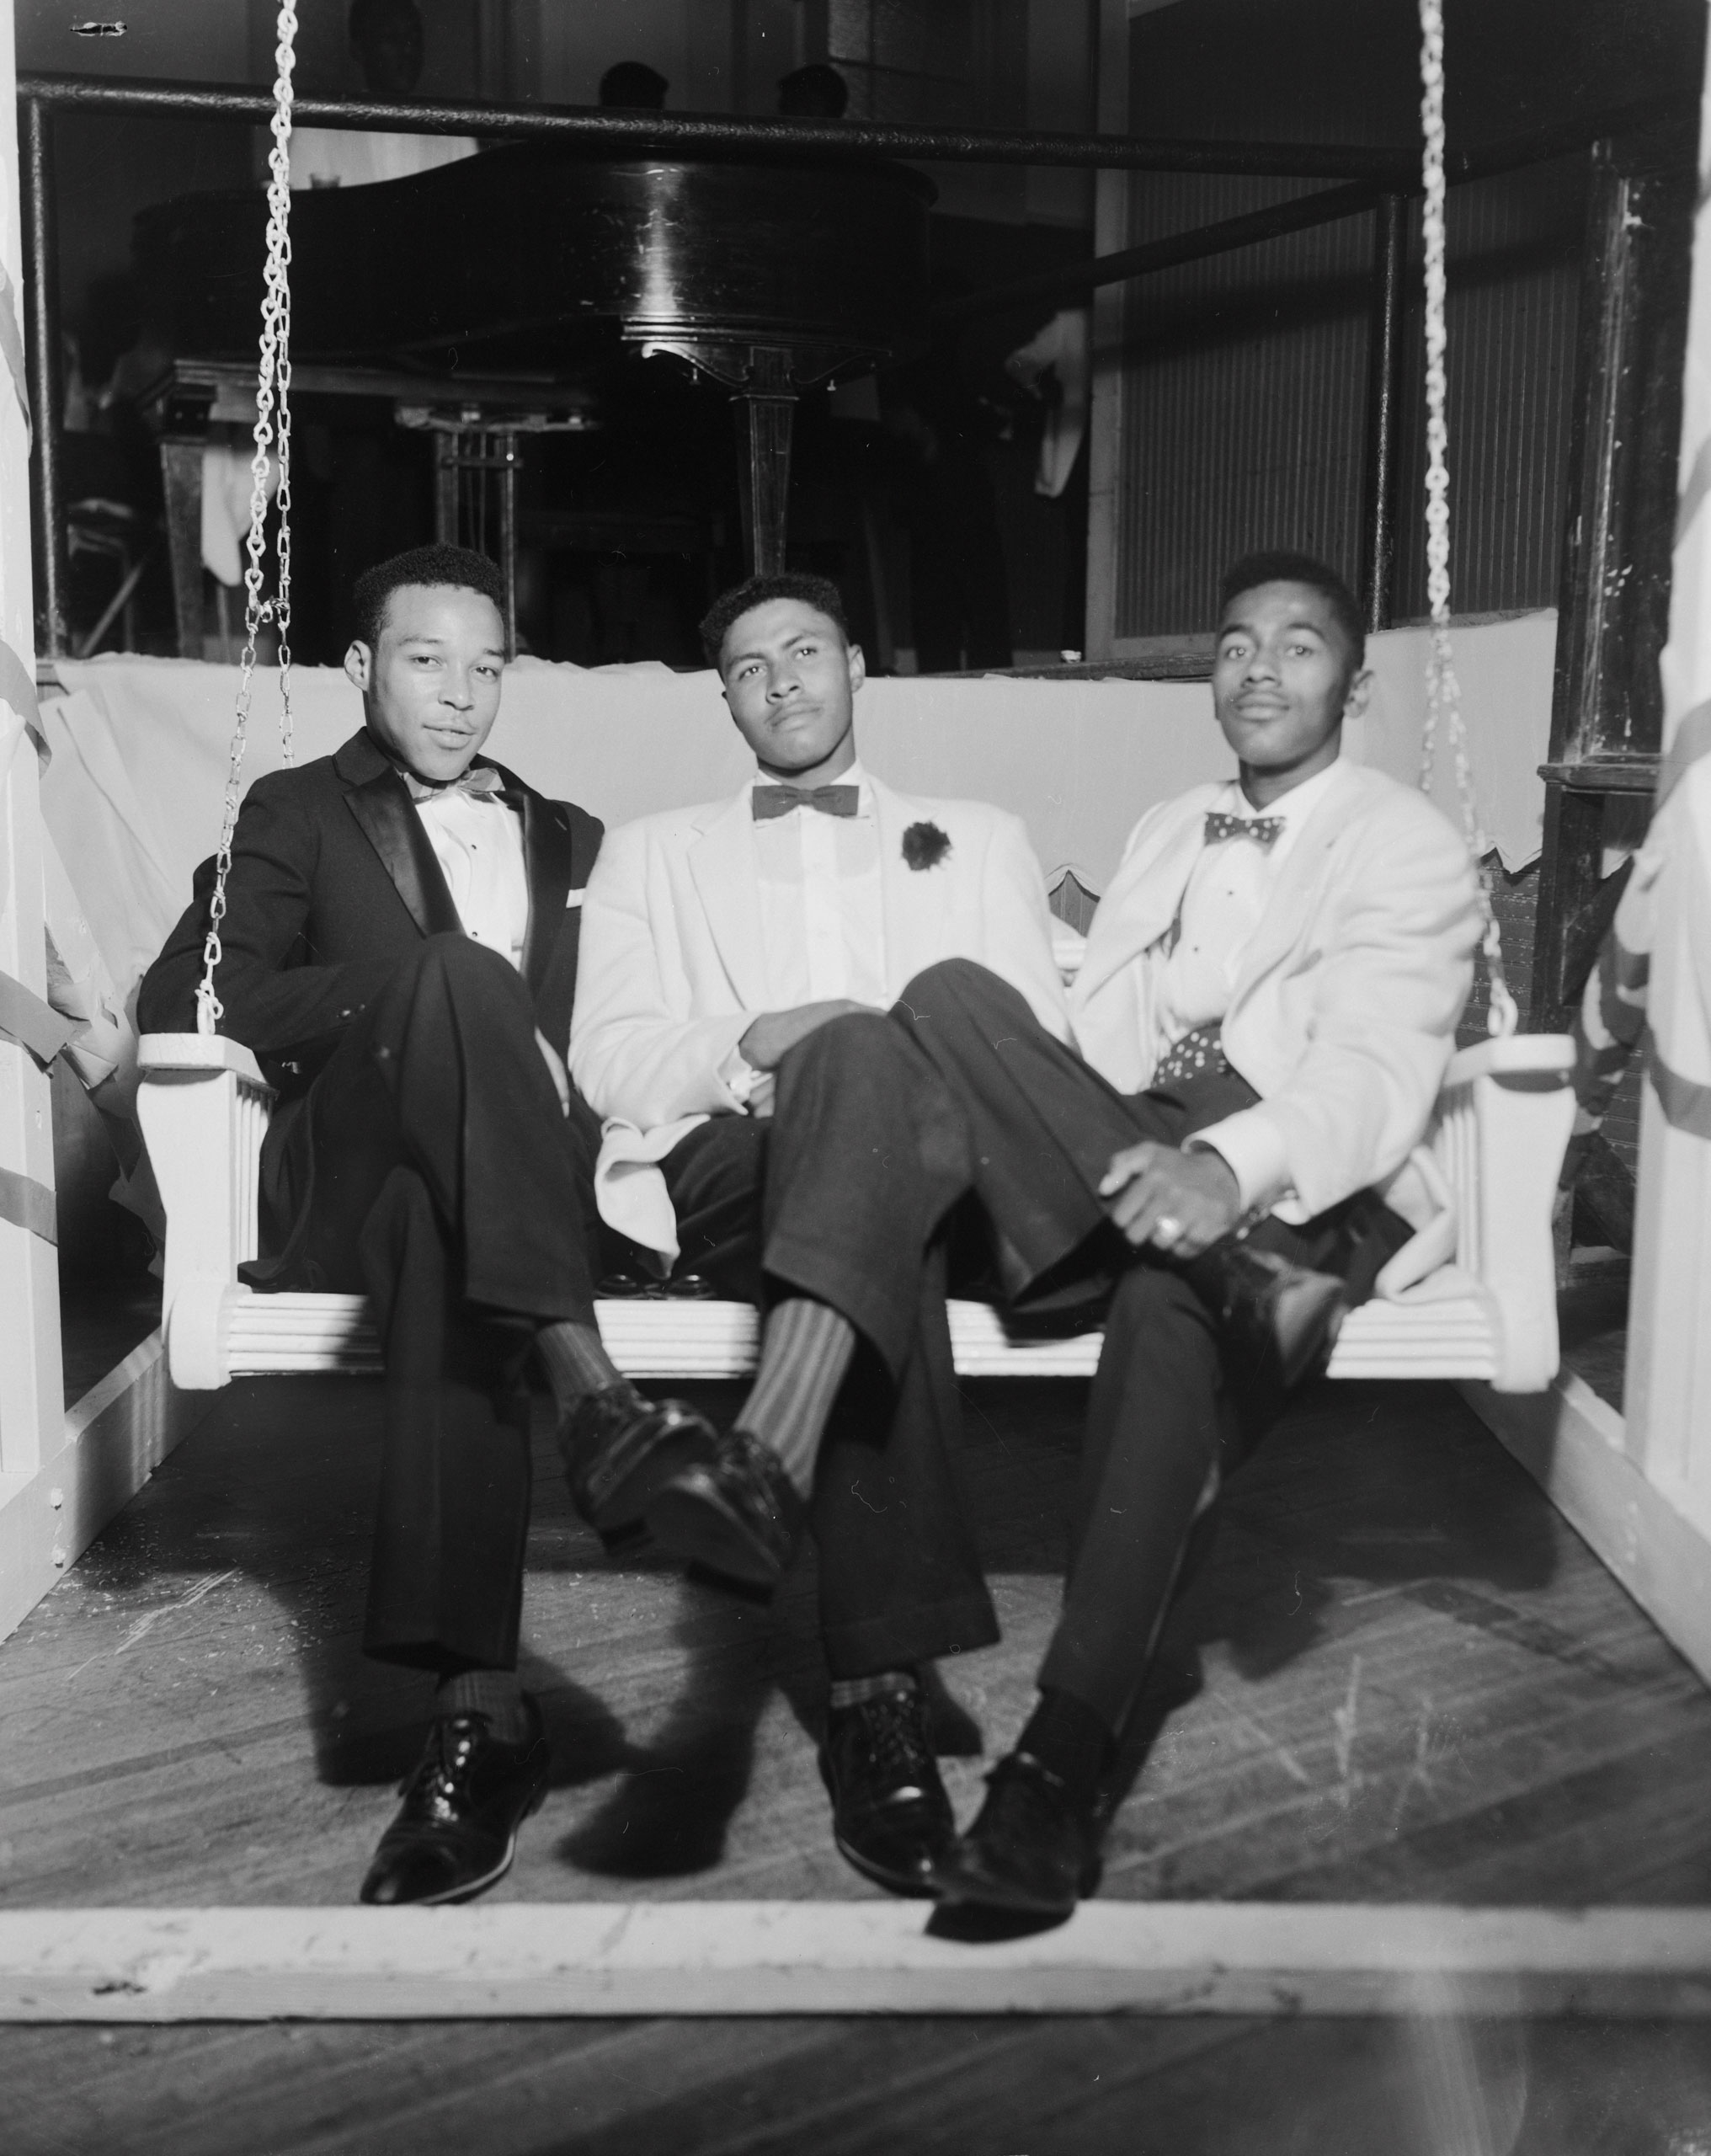 Douglas Burns, Charles Henry Sayles, and Alfred A. Neal sitting on a porch swing, 1958.